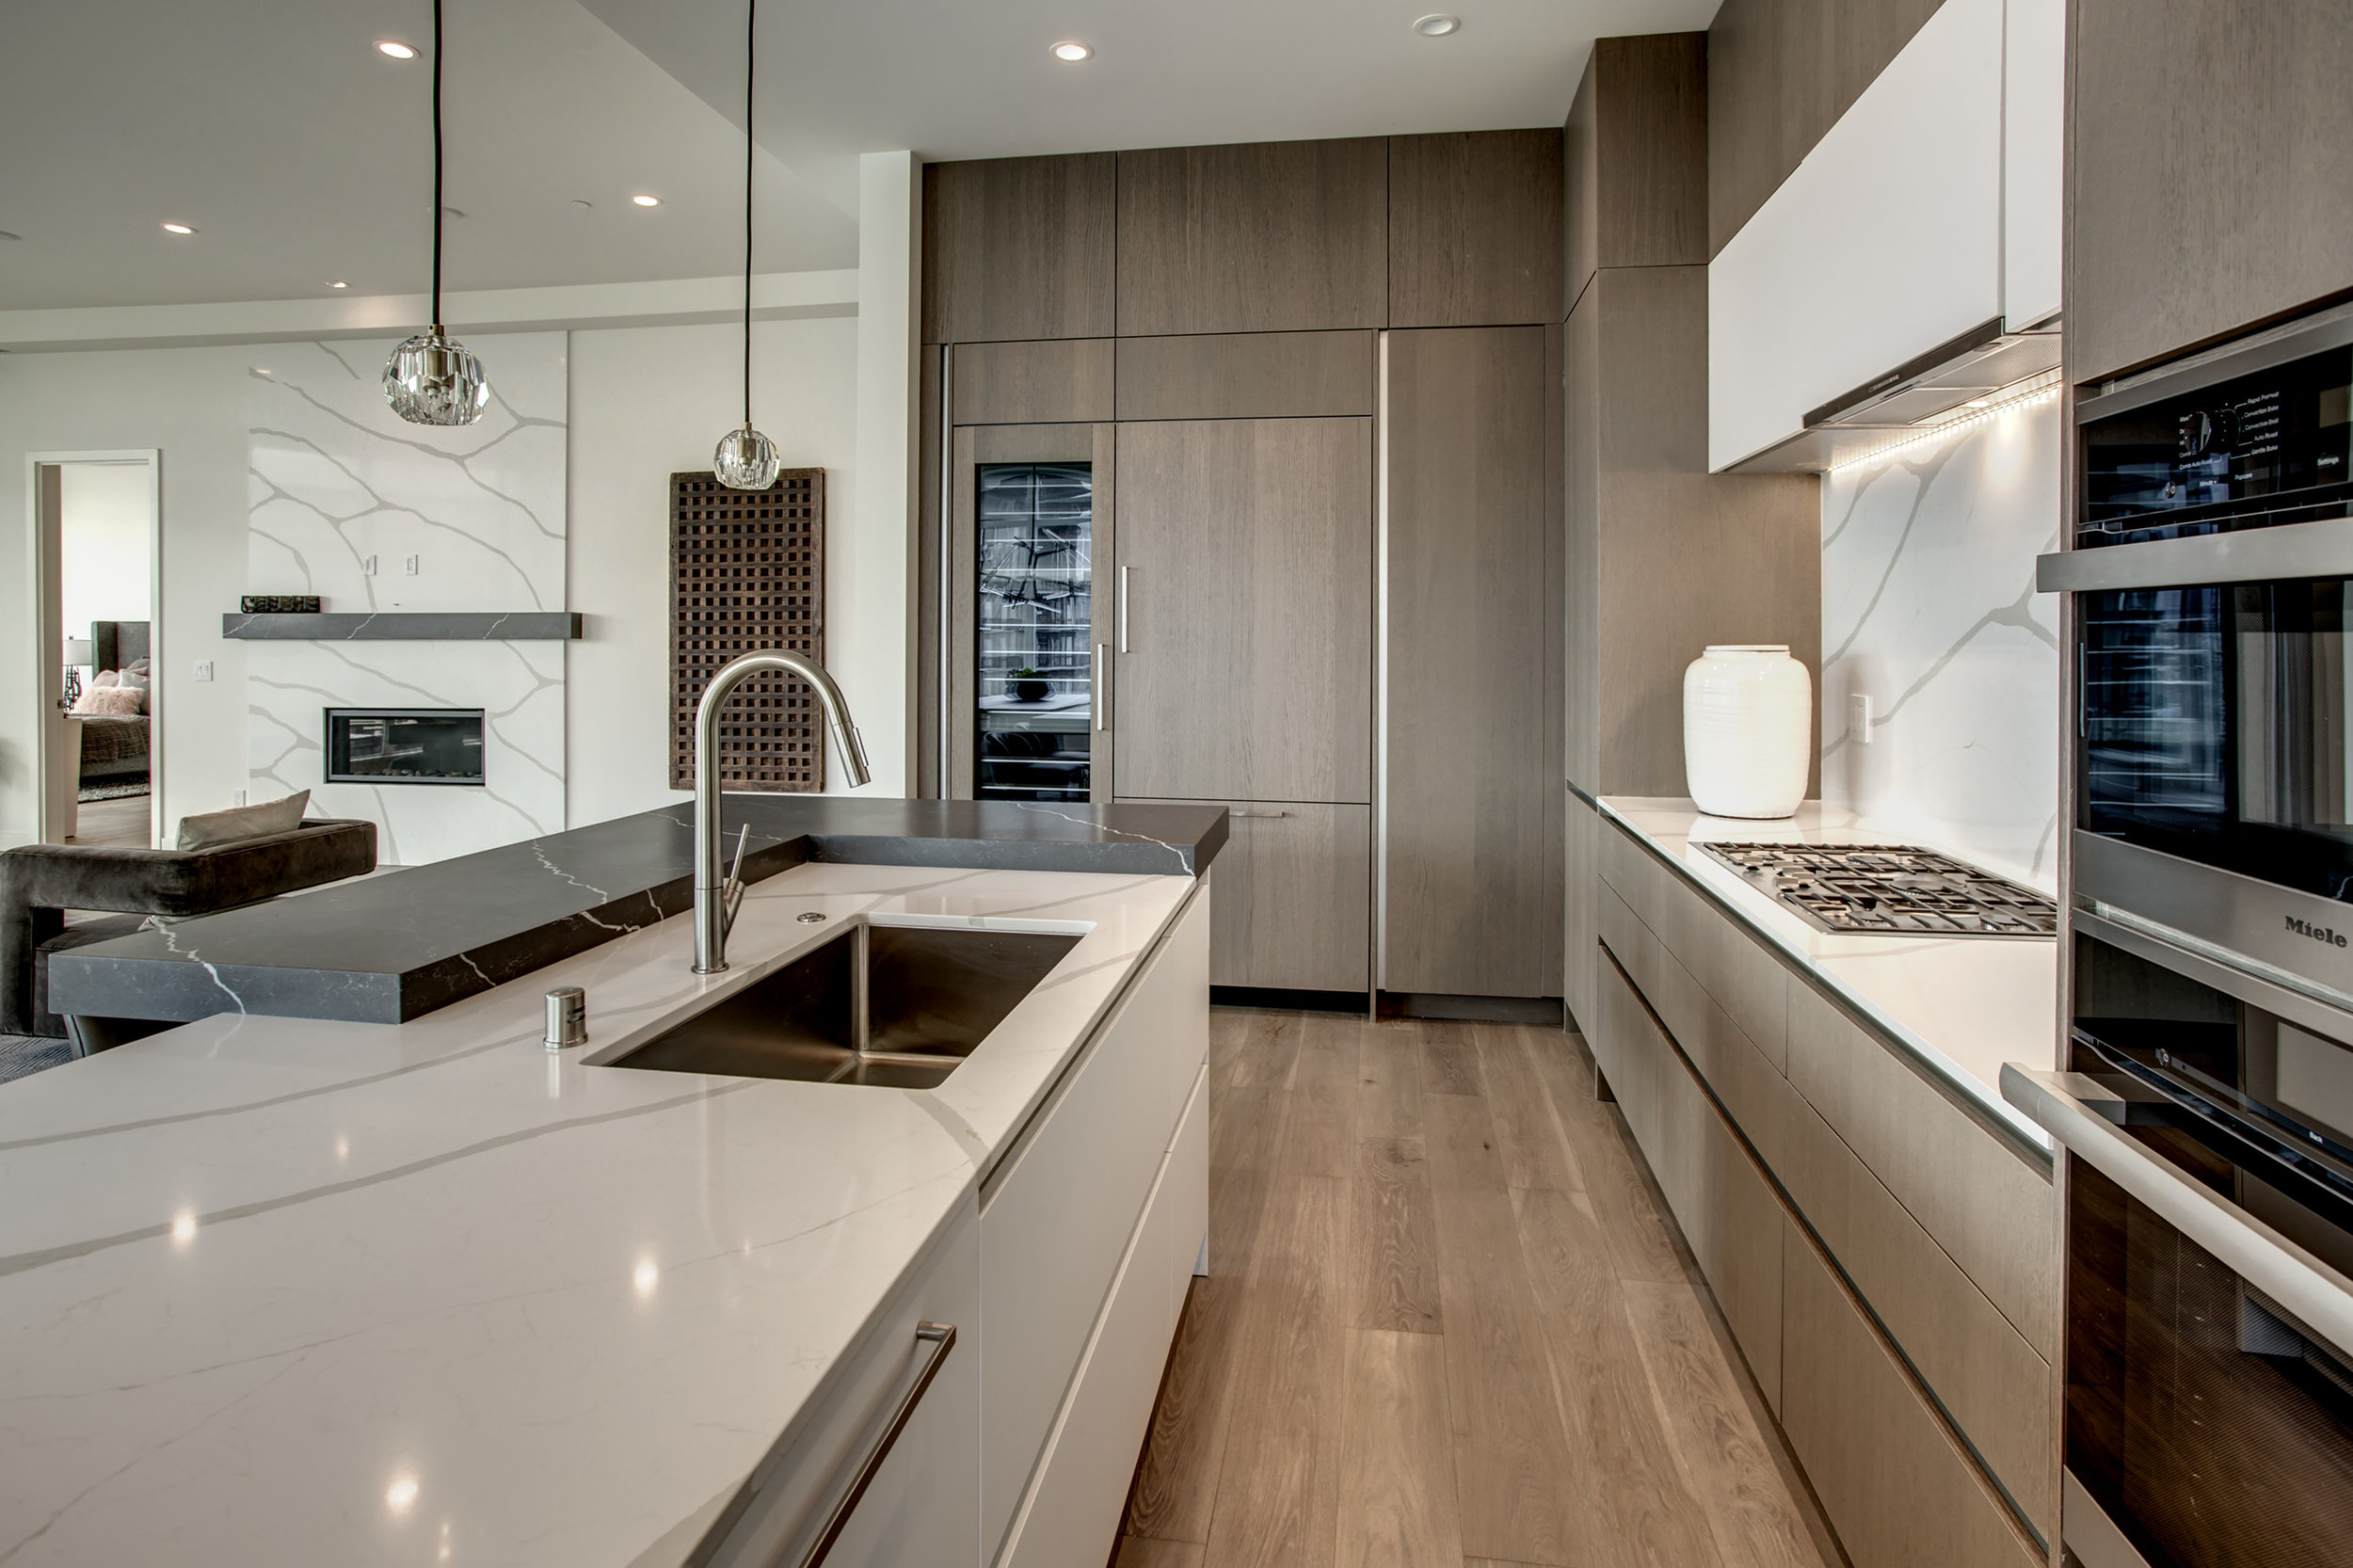 The kitchen is equipped with Miele appliances and includes an espresso maker, wine tower, and three ovens.